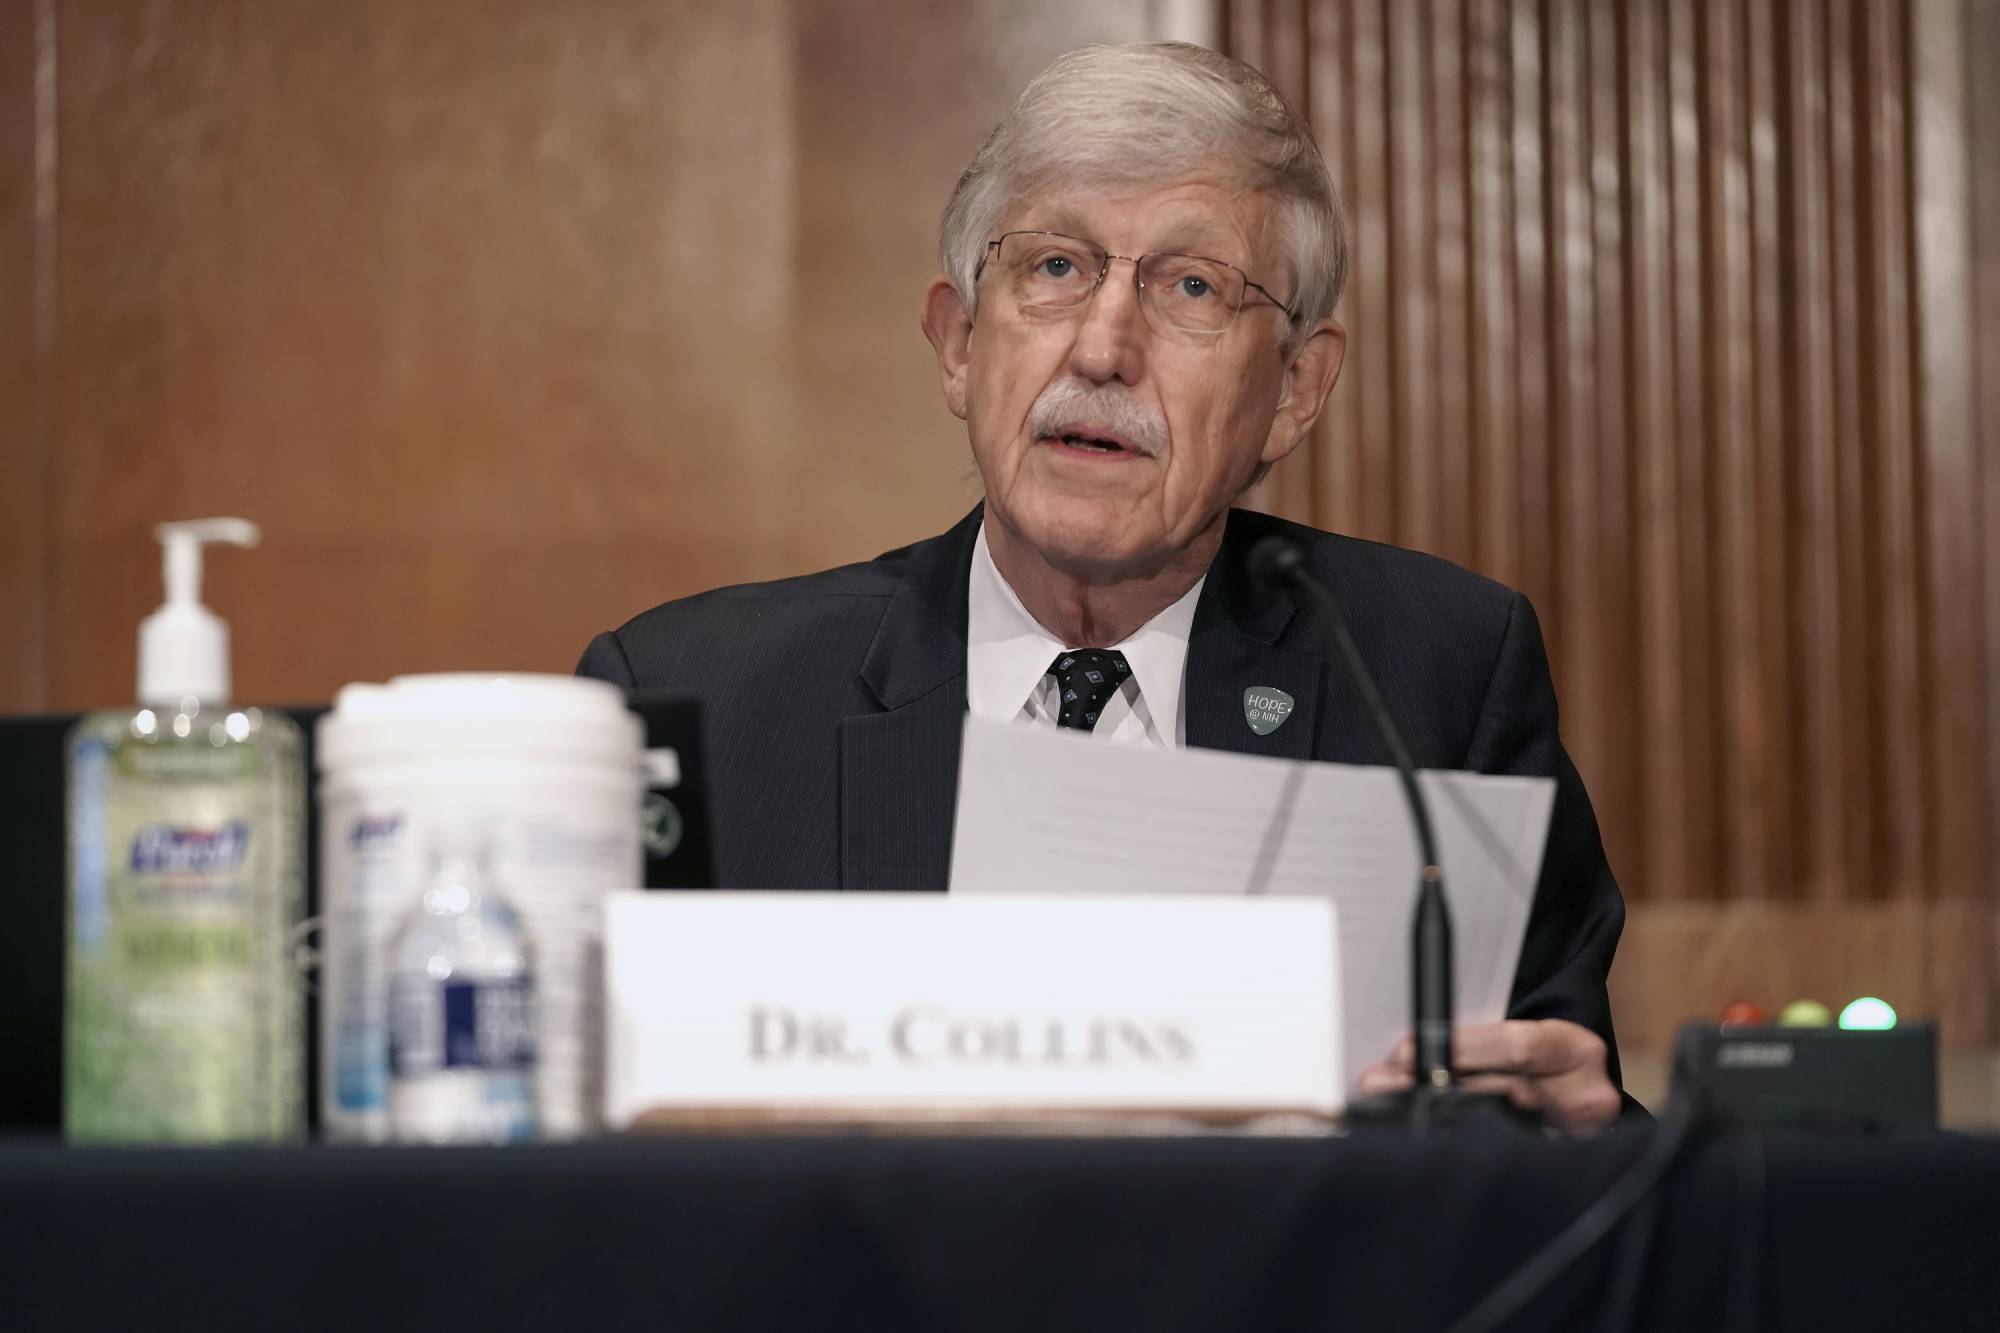 Dr. Francis Collins, Director of the National Institutes of Health, gives an opening statement during a Senate Health, Education, Labor and Pensions Committee hearing to discuss vaccines and protecting public health during the coronavirus pandemic on Capitol Hill, Wednesday, Sept. 9, 2020, in Washington. (Greg Nash/Pool via AP)